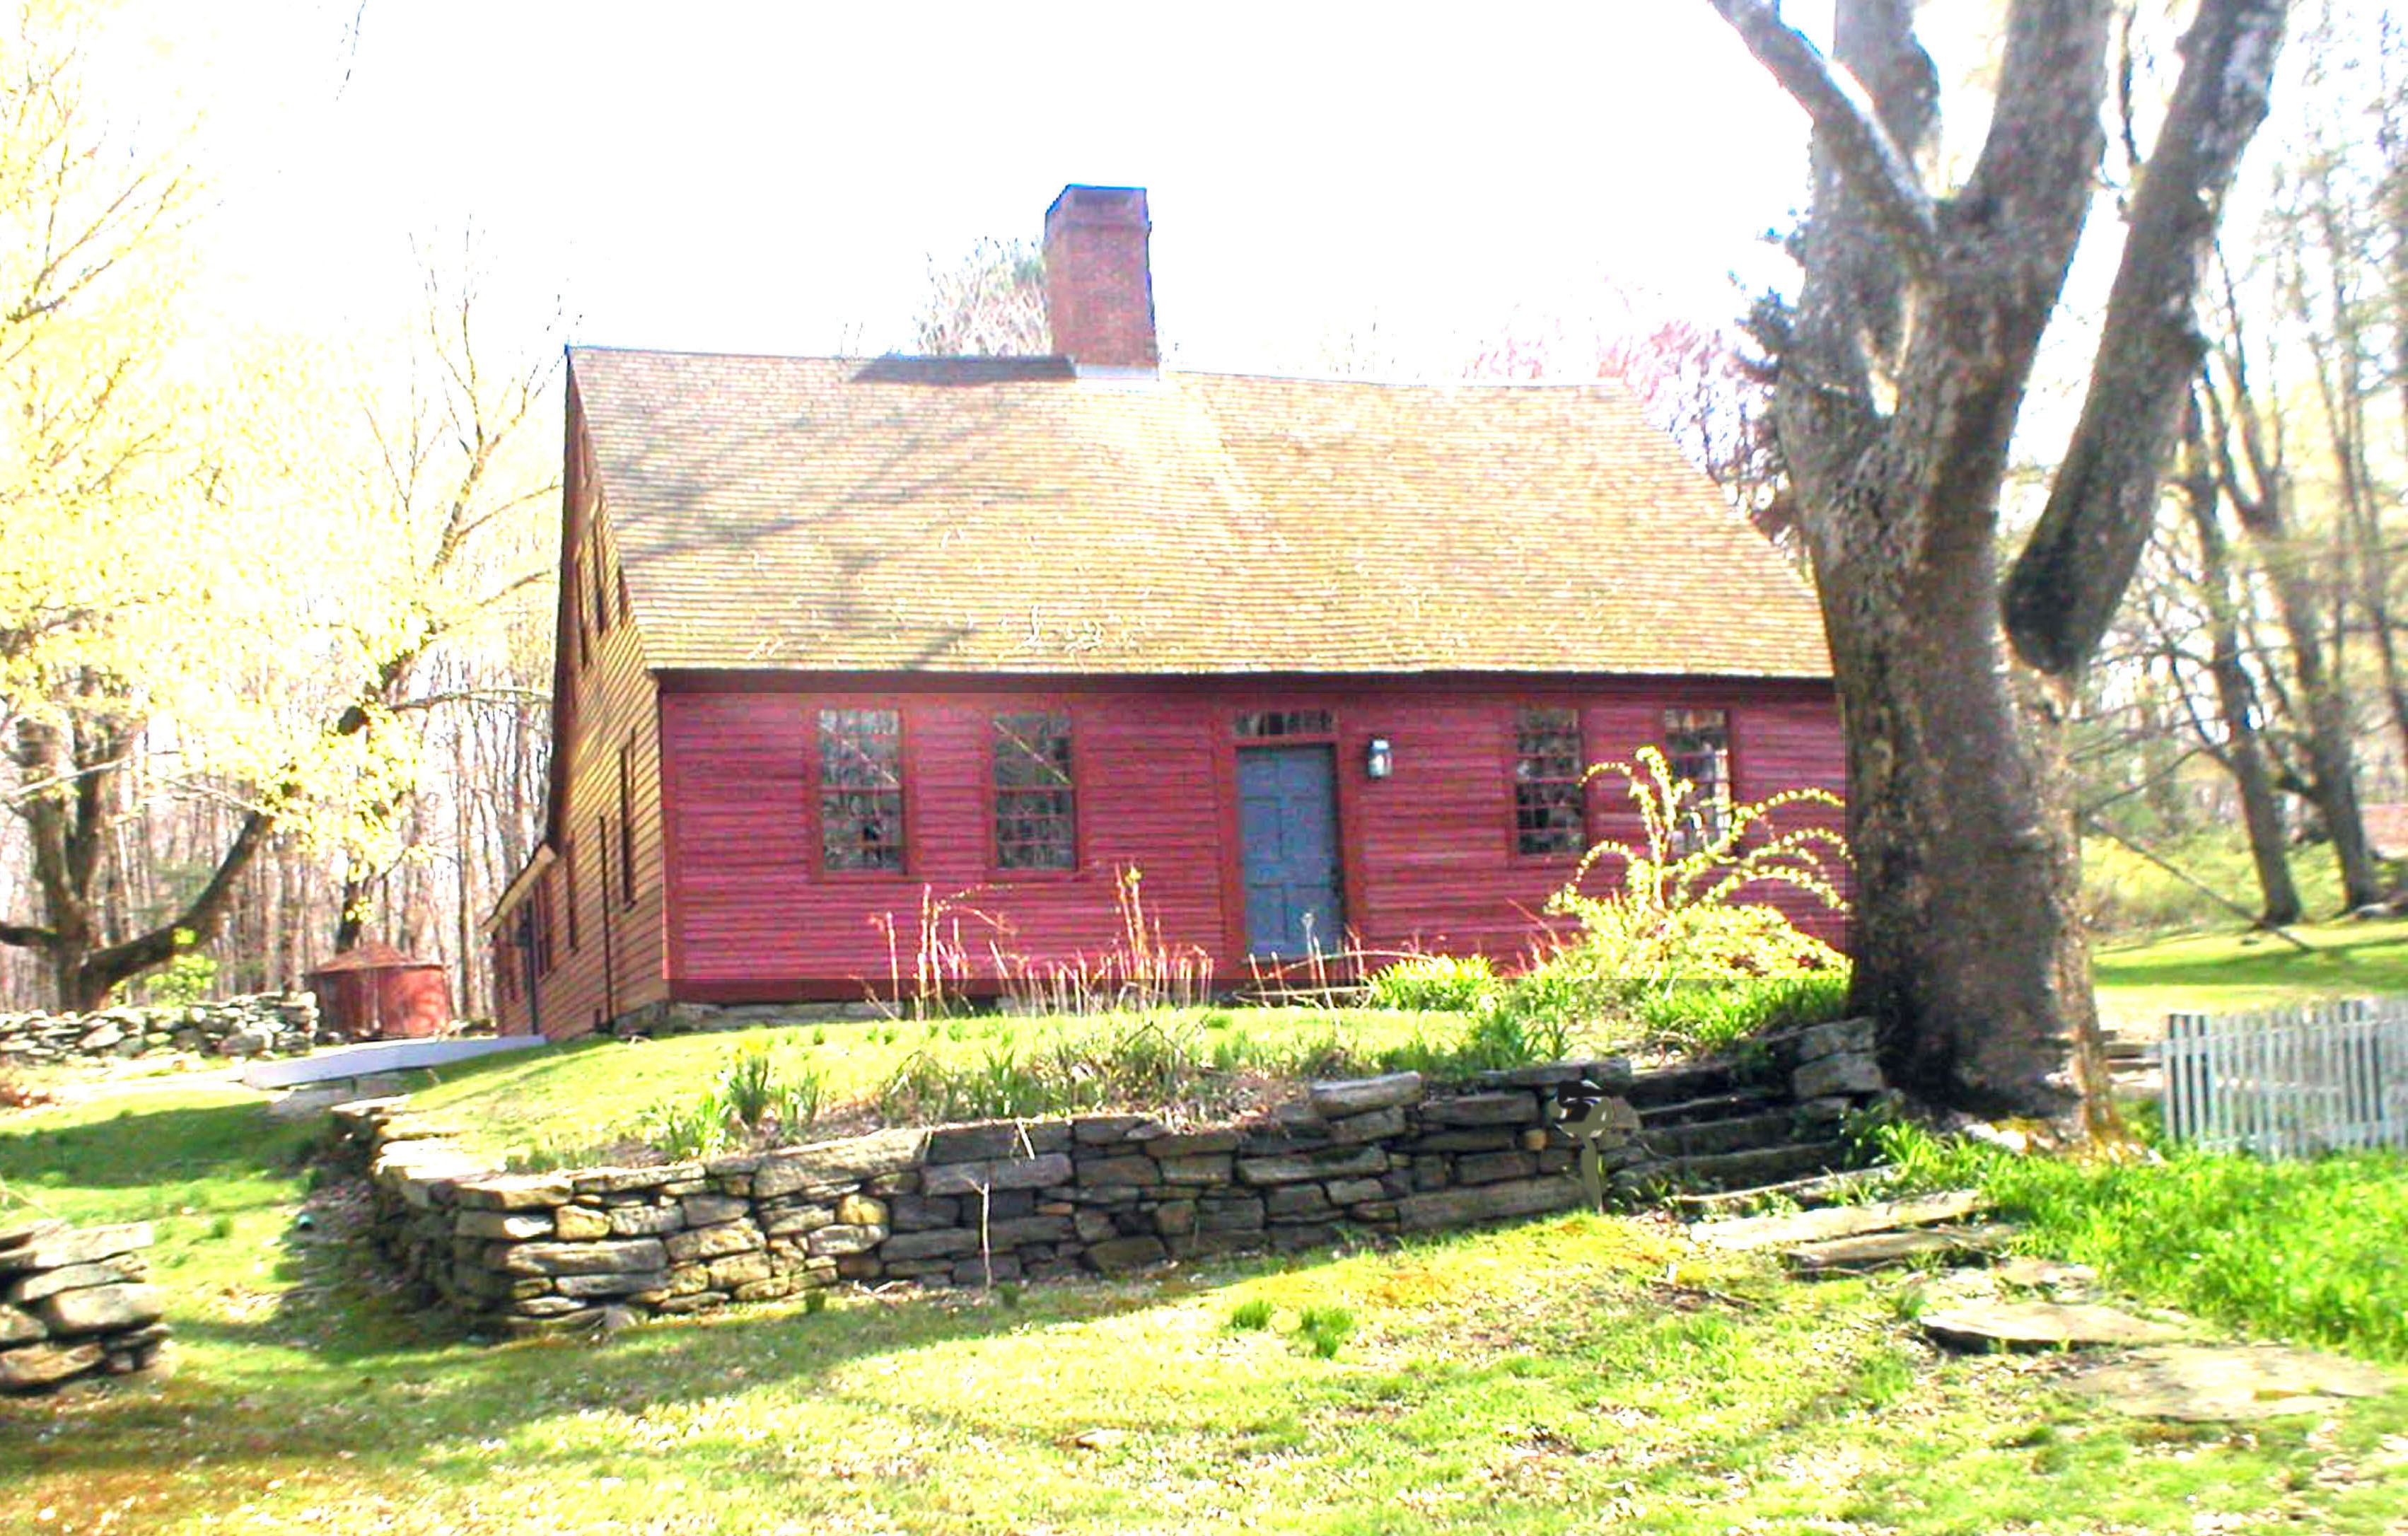 The Benton Homestead dates to the 18th century and is now a museum.